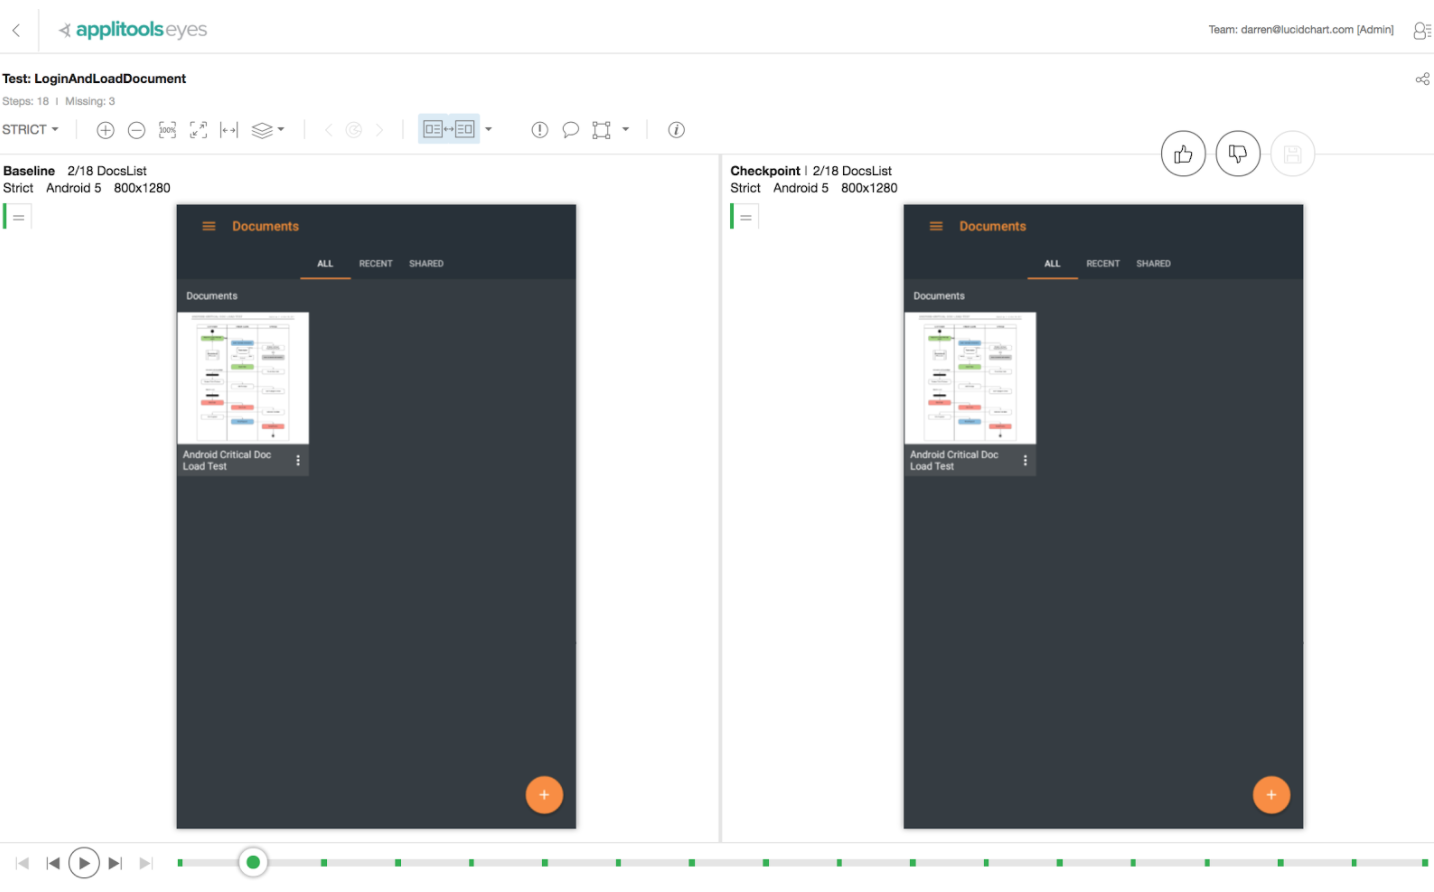 Applitools provides side by side visual comparison of UI snapshots during testing.